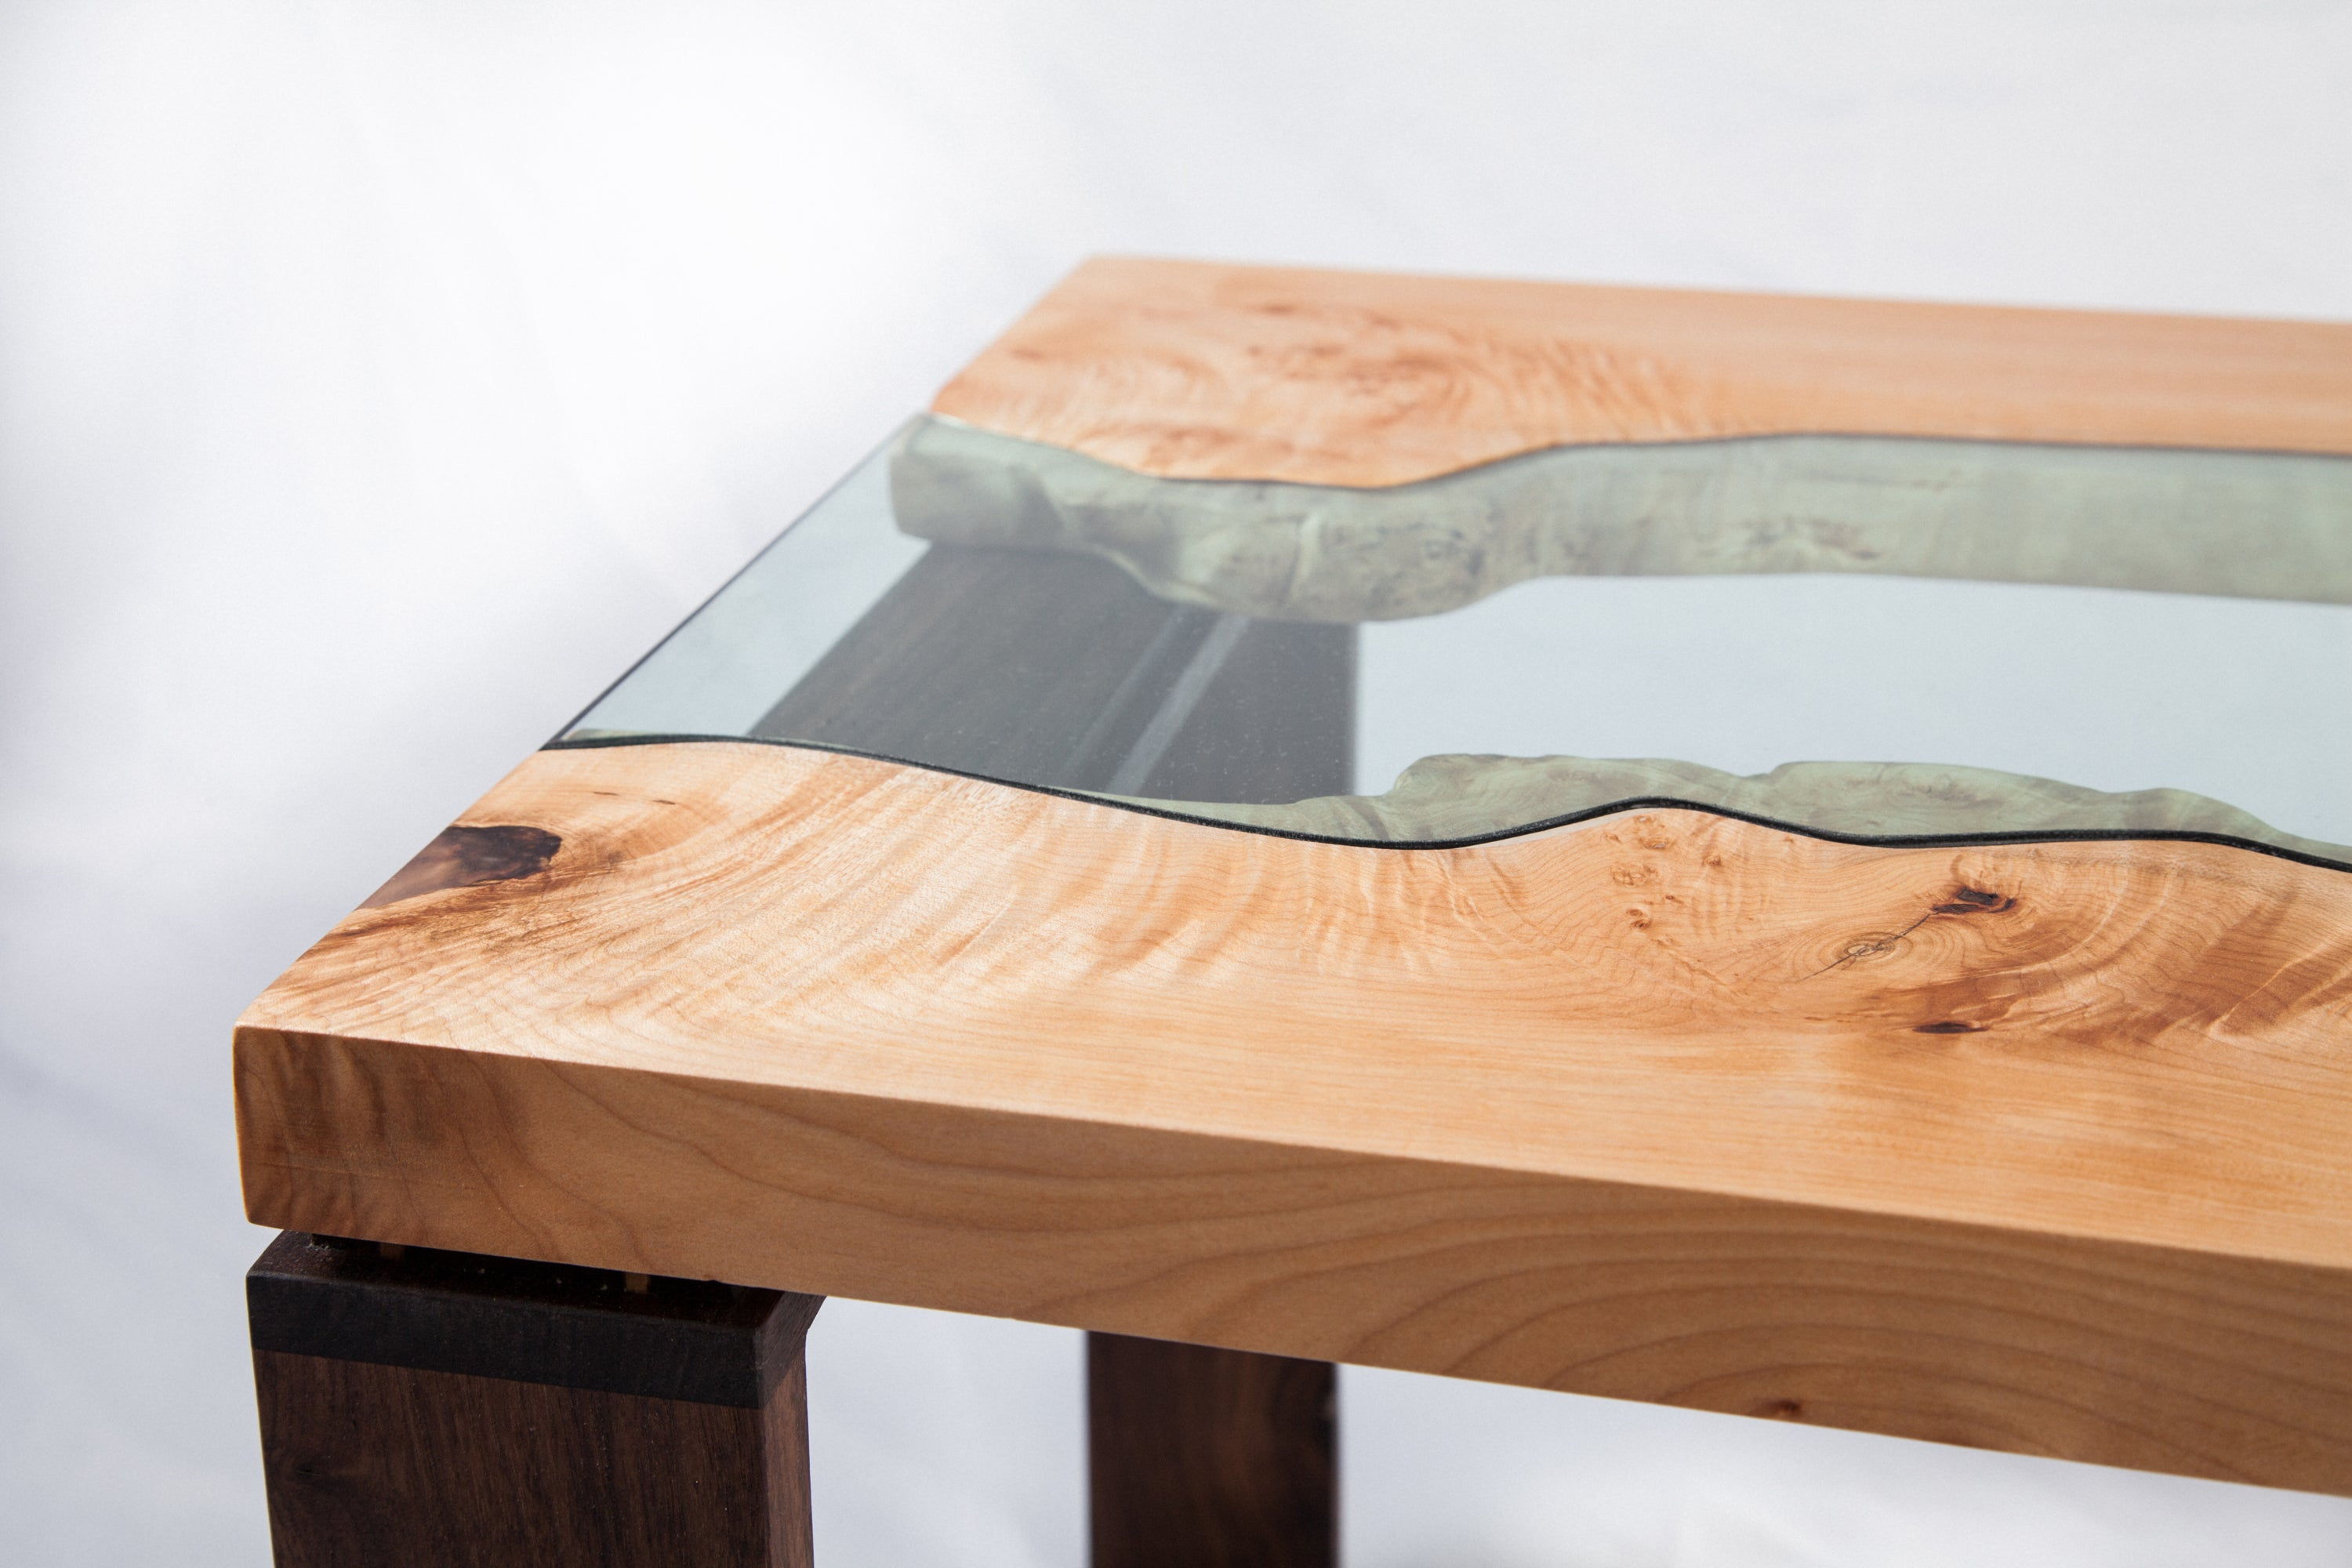 Handmade river coffee table with a big leaf maple top, river glass centre, and square walnut legs